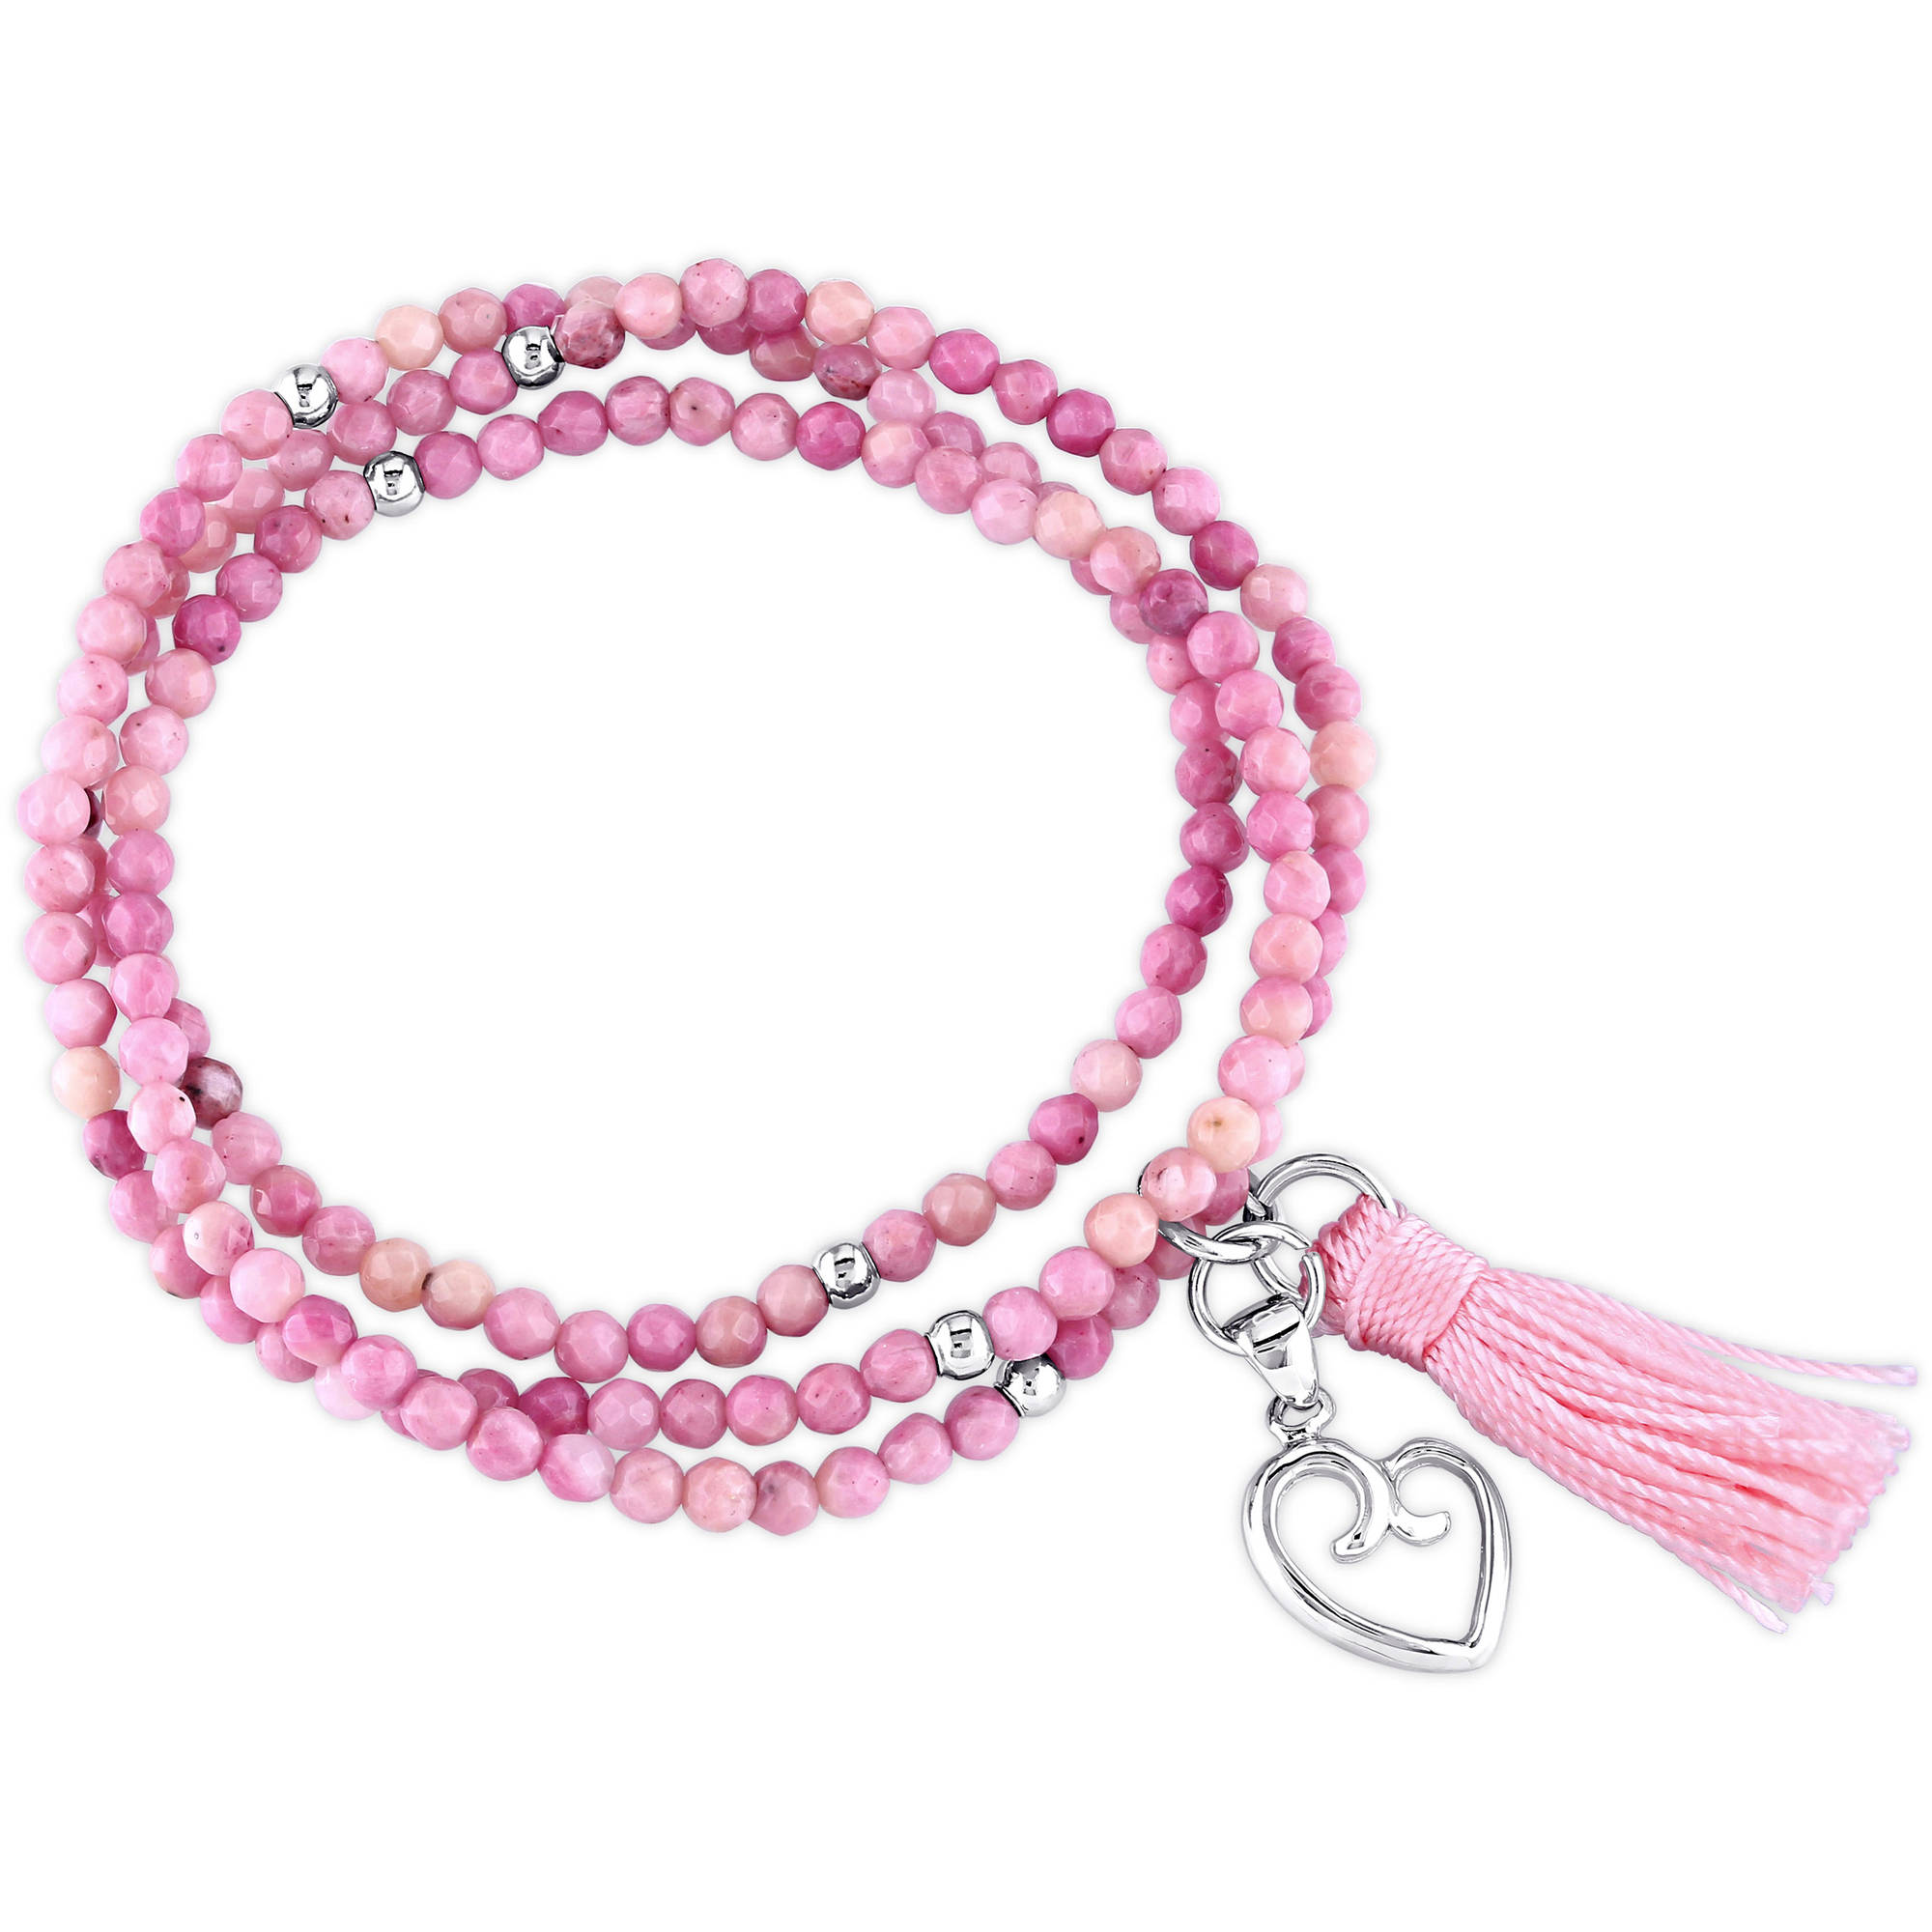 Tangelo Rhodonite and Pink Tassel Sterling Silver Endless Heart Charm Bracelet, 20""